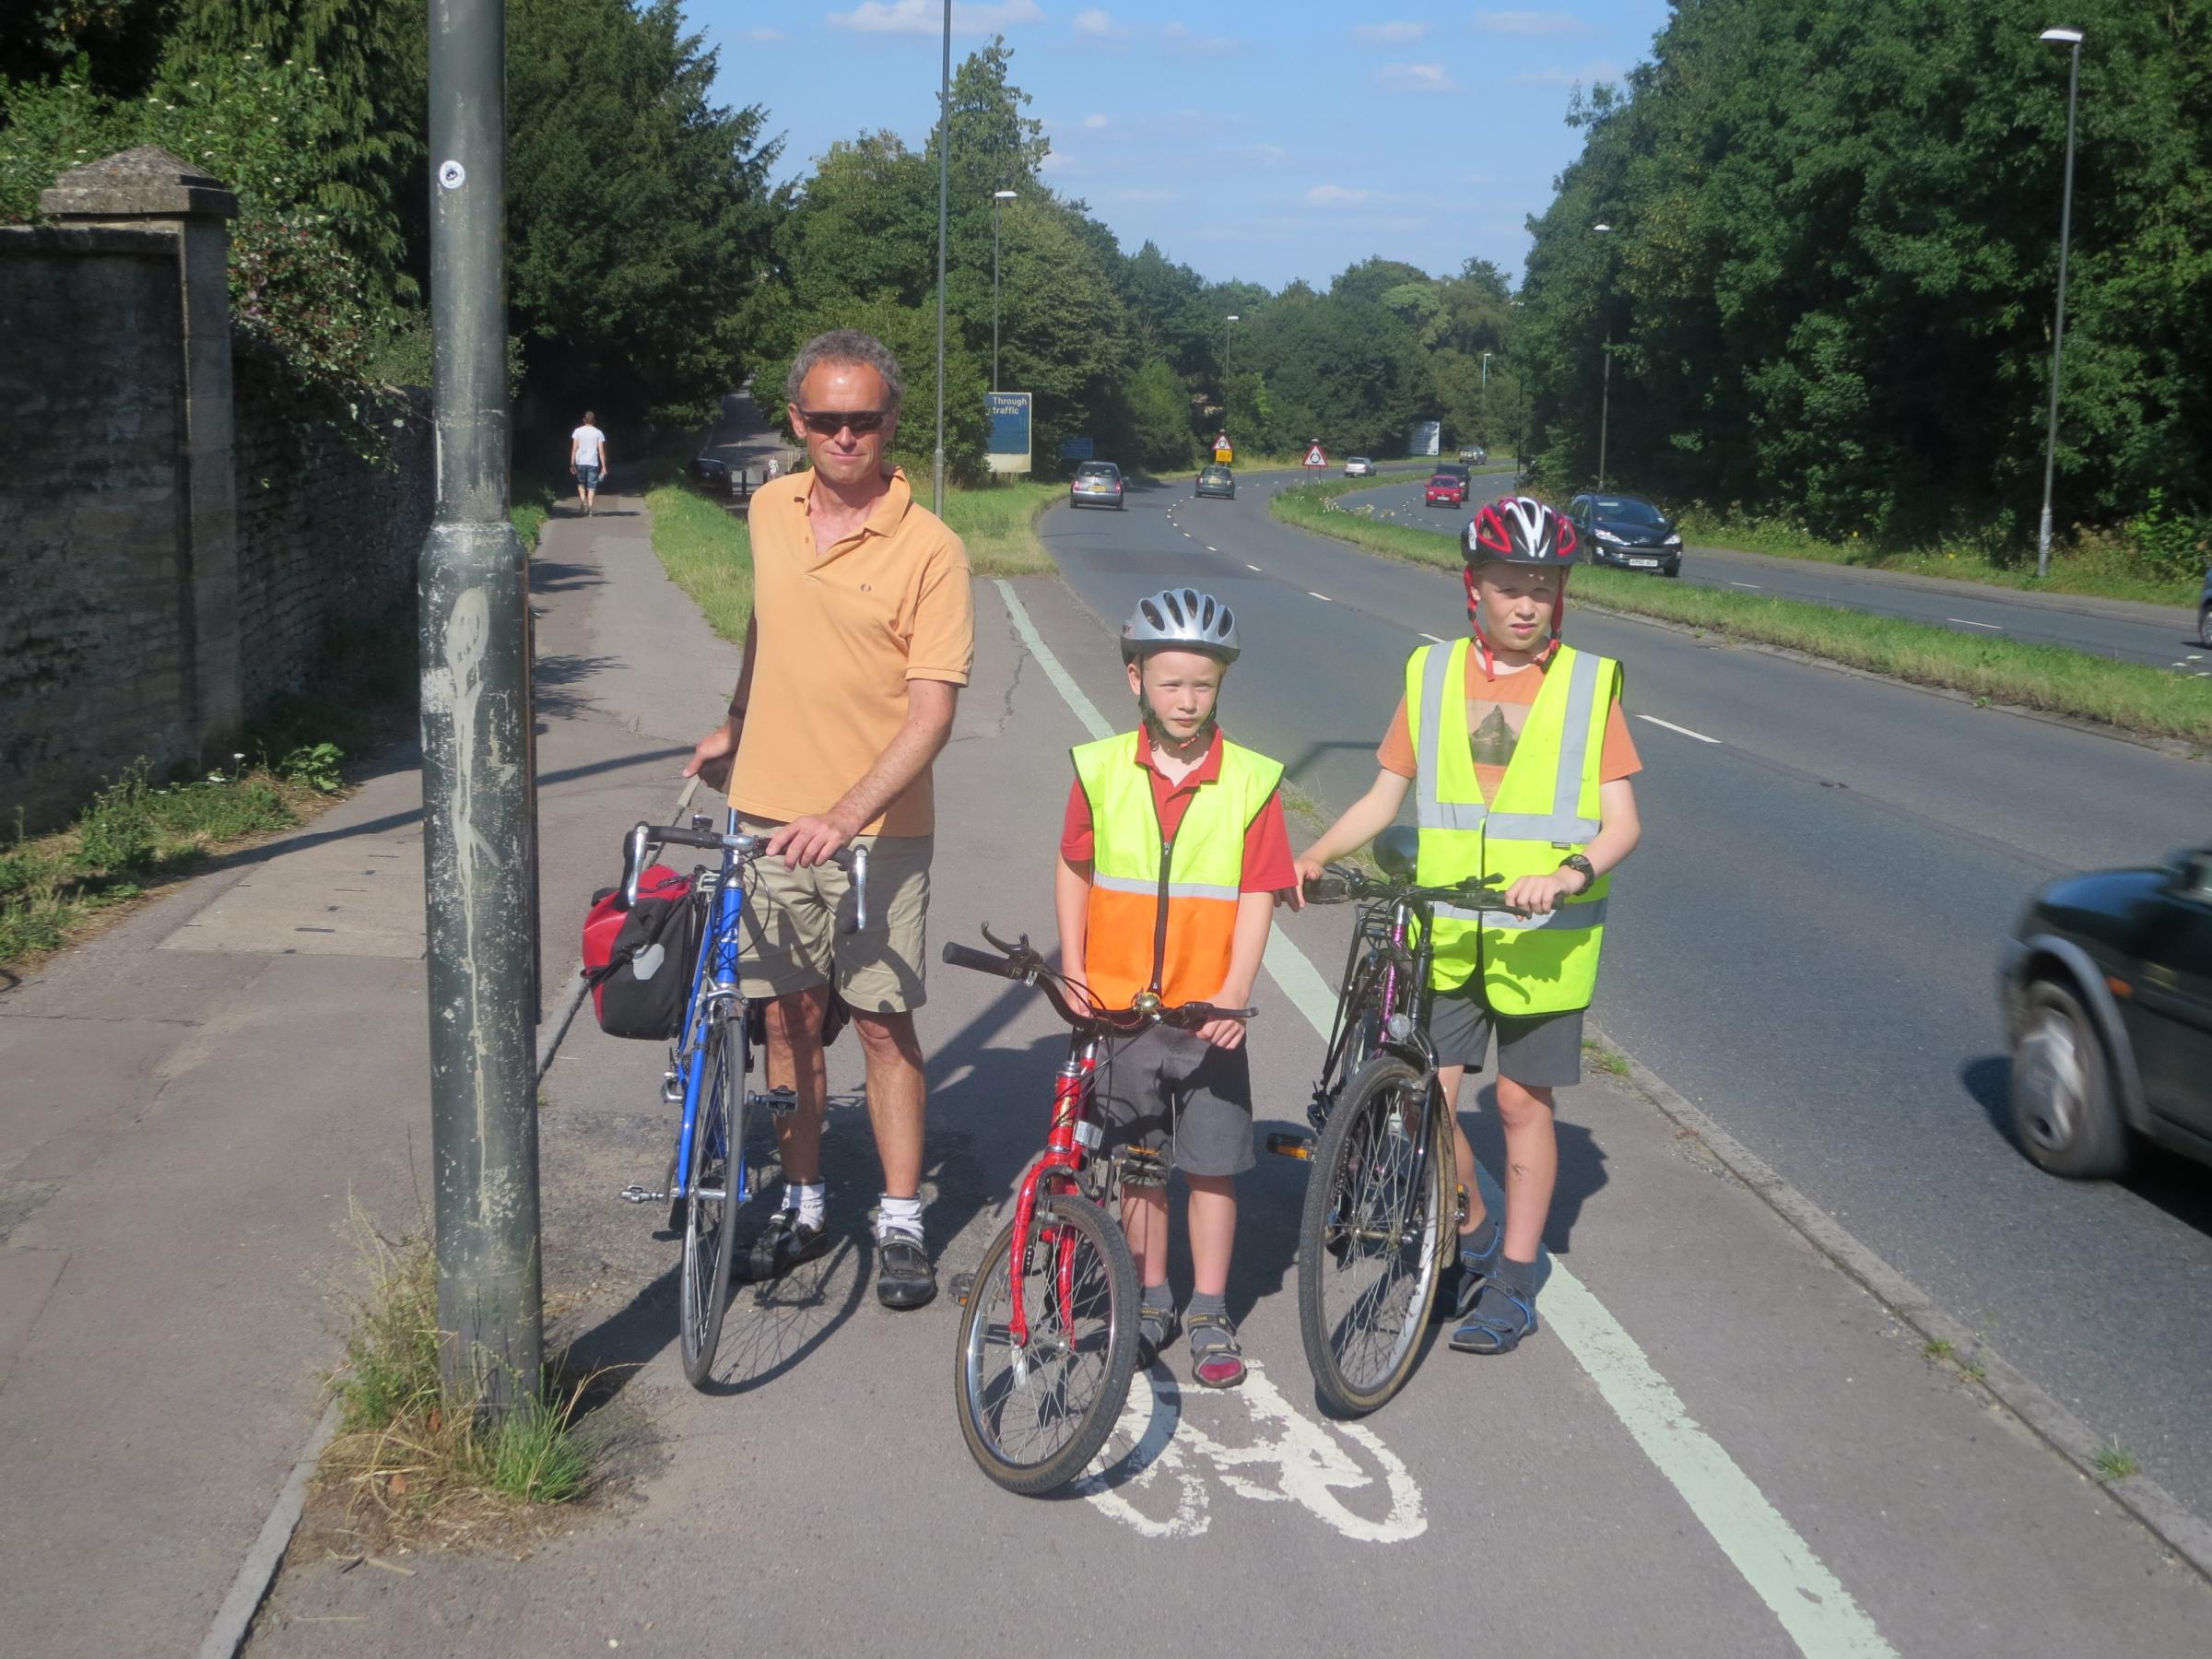 Stratton father highlights cycling safety concerns